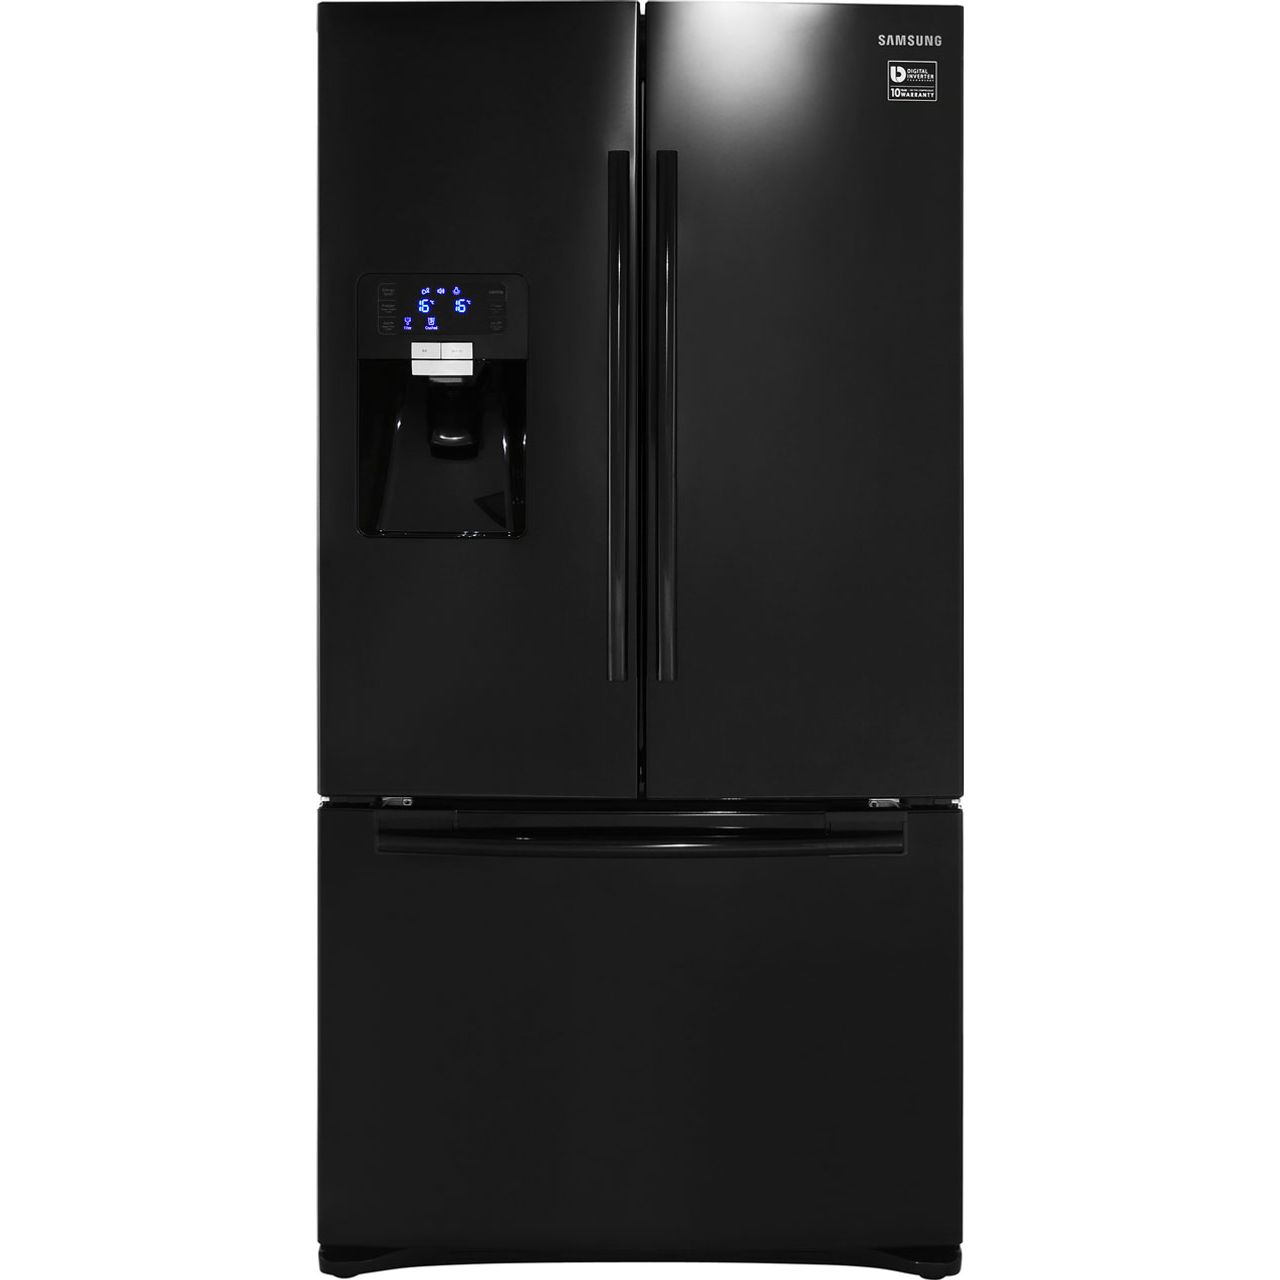 Samsung GSeries RFG23UEBP Free Standing American Fridge Freezer in Black